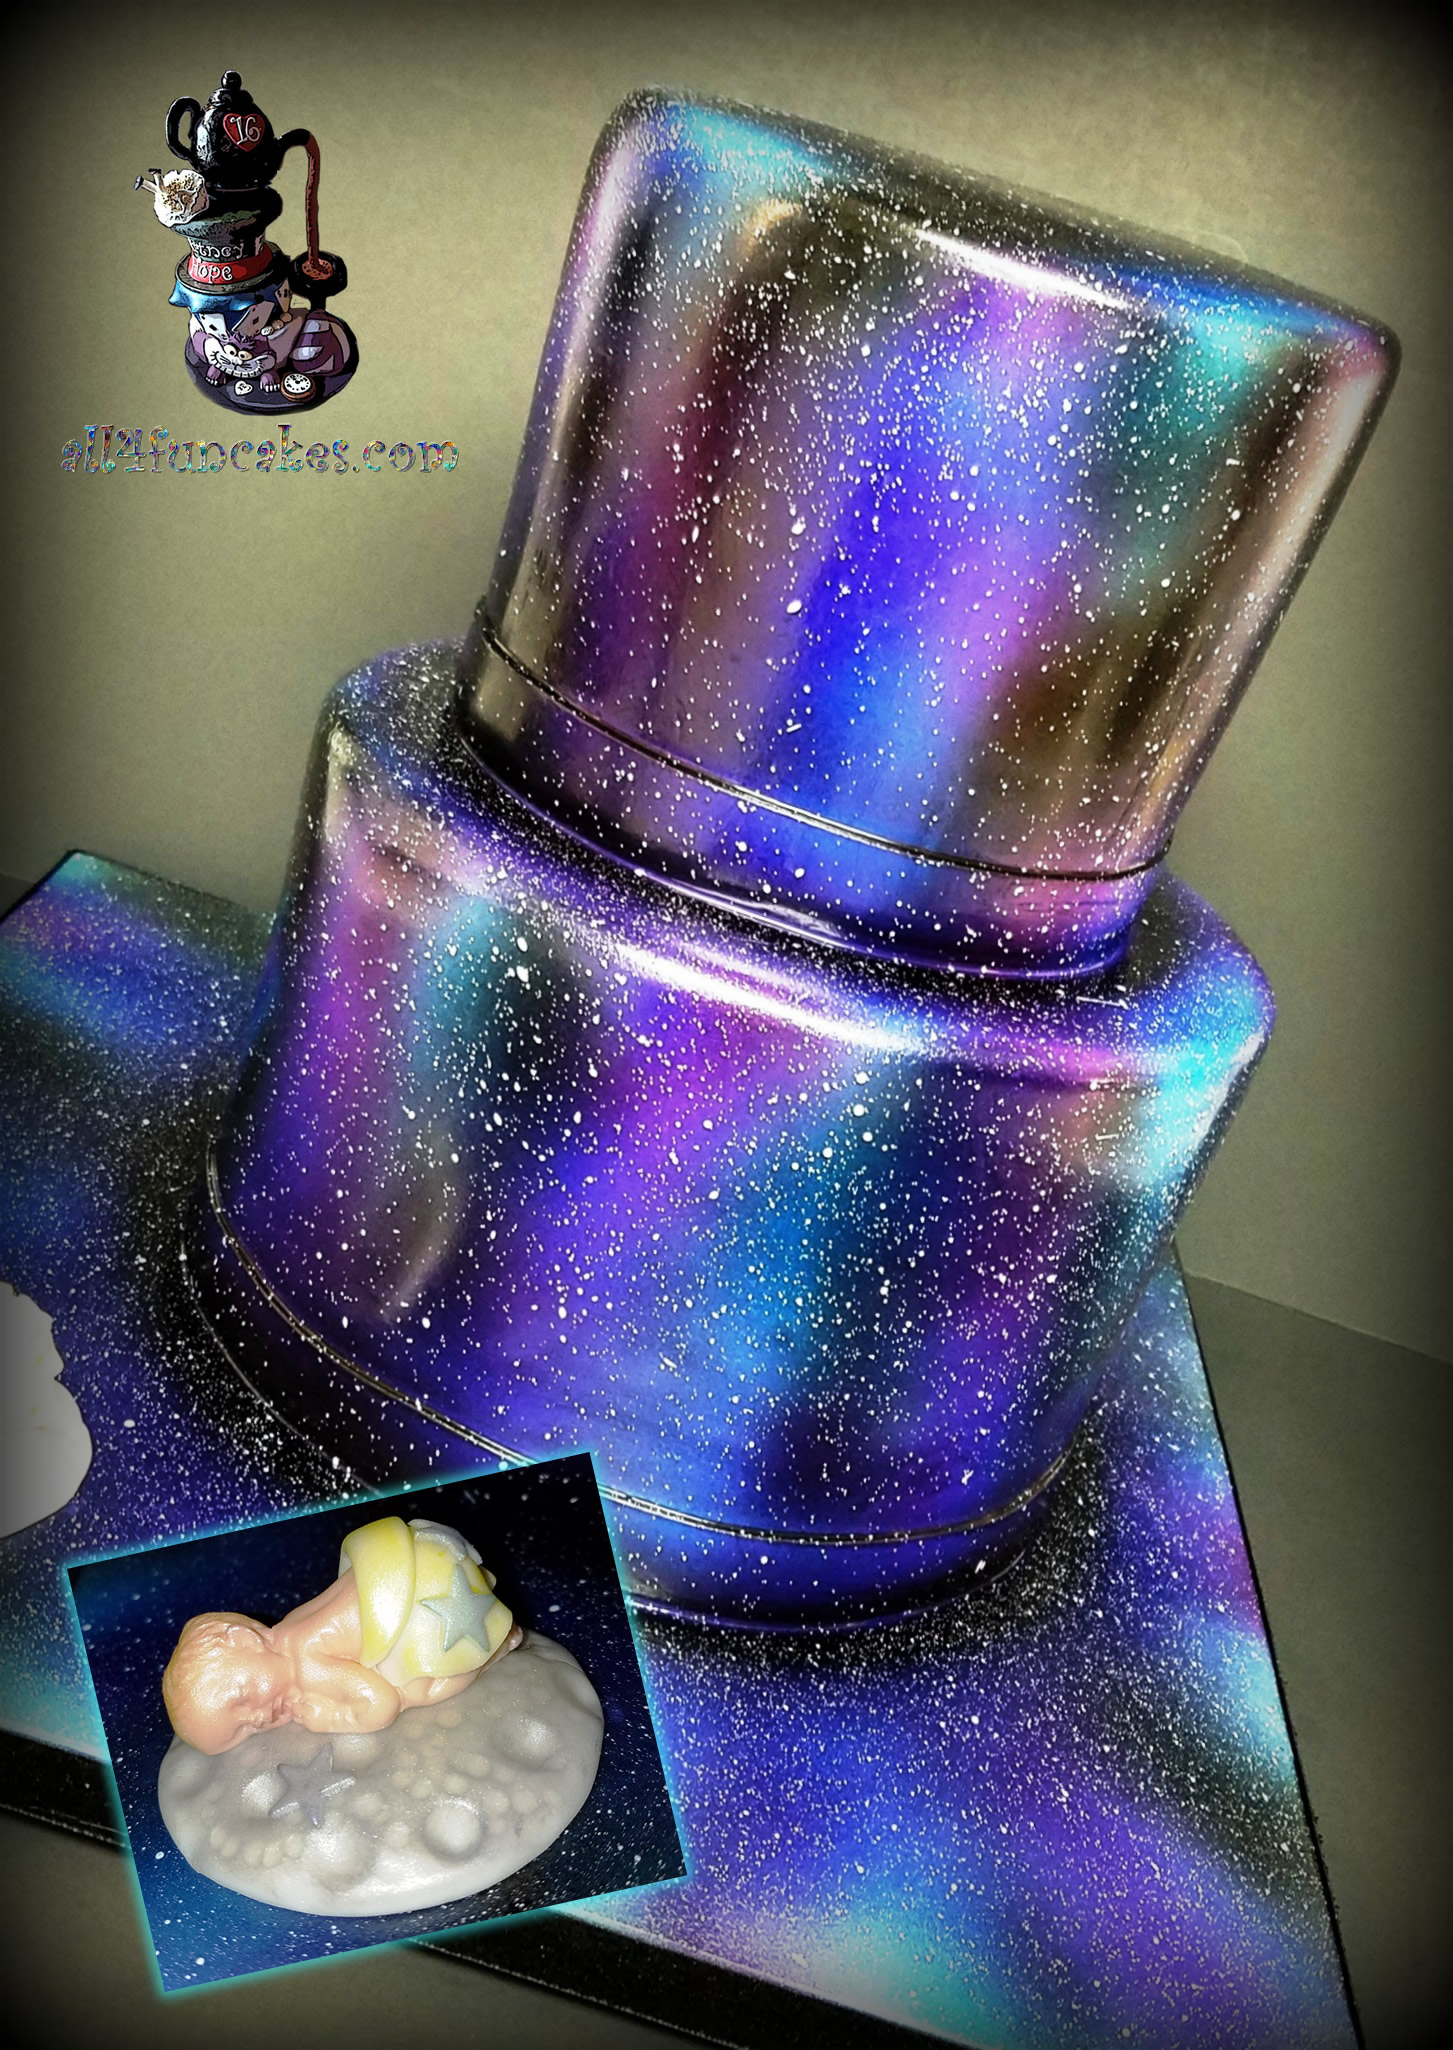 Galaxy Baby Shower Cake with Moon and Star Baby by All4Fun Cakes LLC 2017